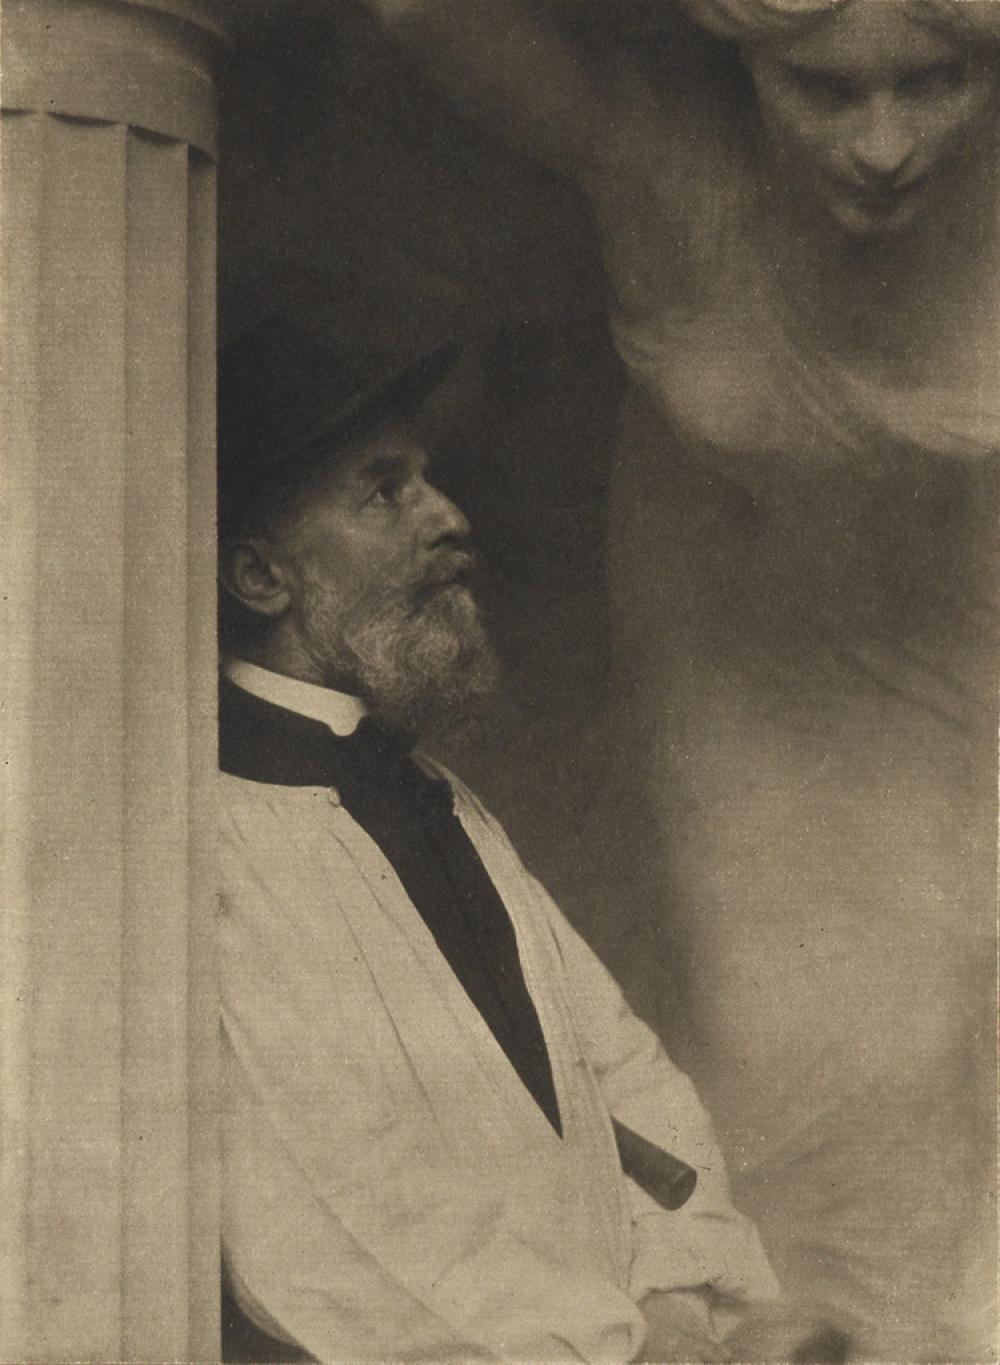 EDWARD STEICHEN (1879-1973) The artist Paul-Albert Bartholomé.